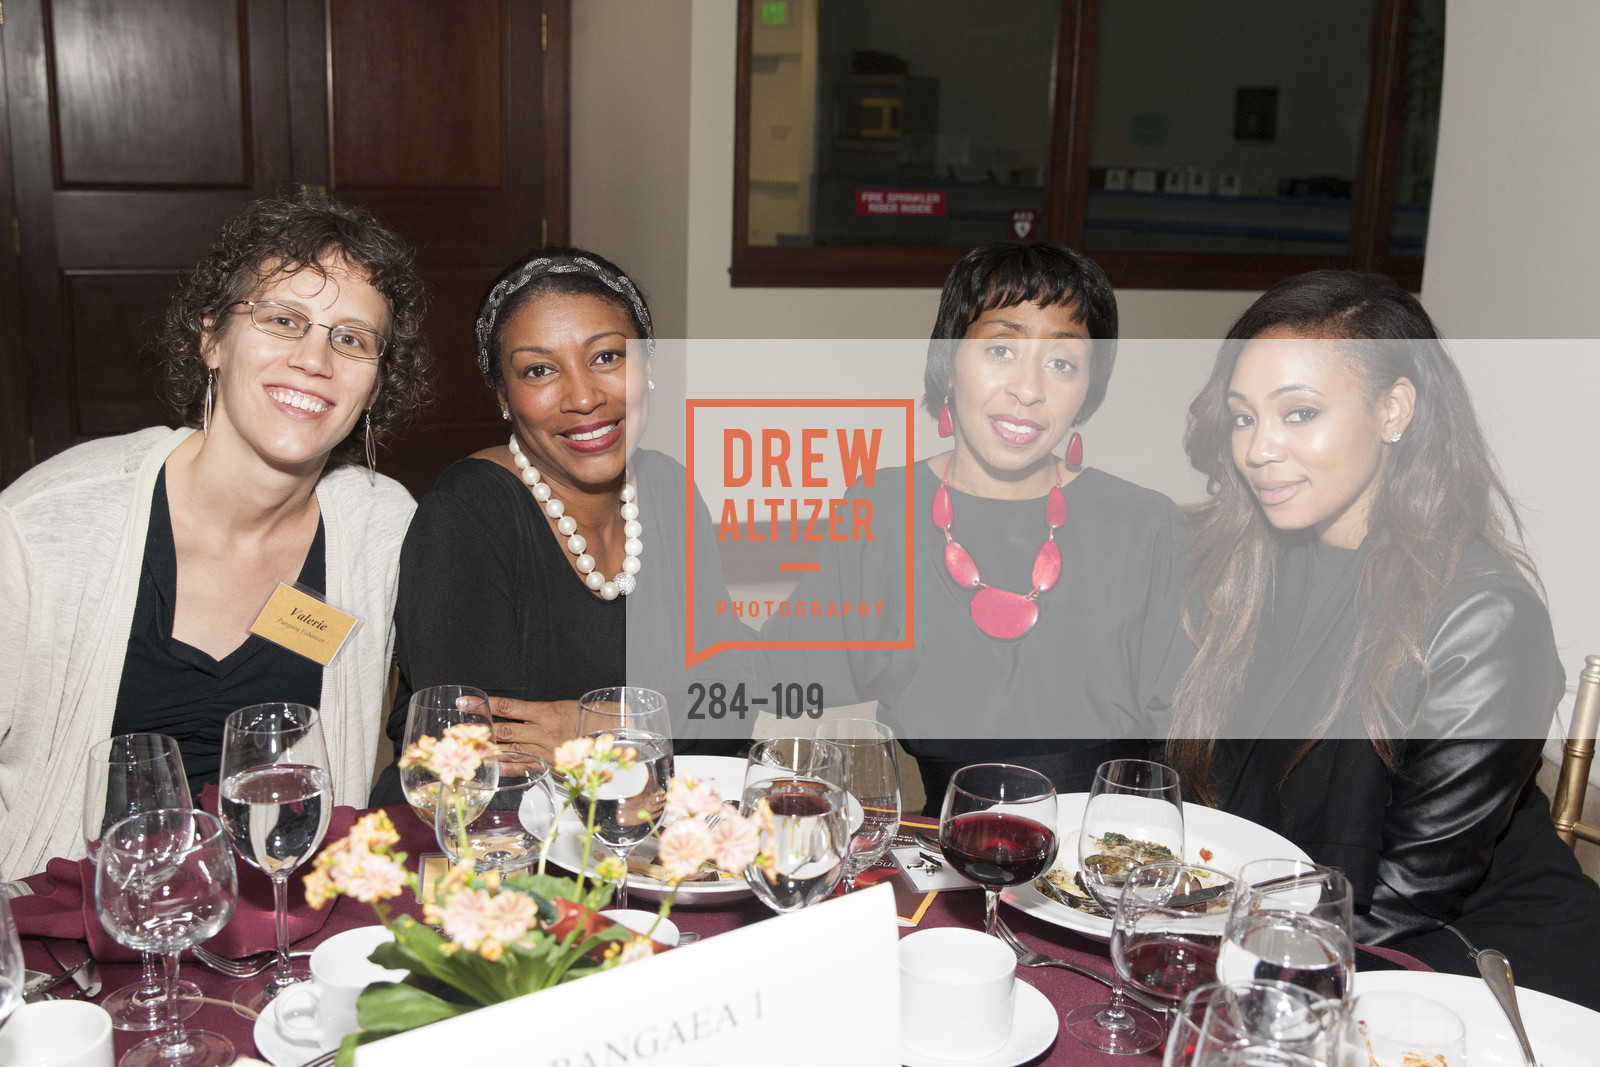 Valerie Todd, Carla Tucker, Nneka Taylor, PANGAEA GLOBAL HEALTH Leadership Dinner at Rotunda in Oakland, The Rotunda. Oakland, May 11th, 2015,Drew Altizer, Drew Altizer Photography, full-service agency, private events, San Francisco photographer, photographer california